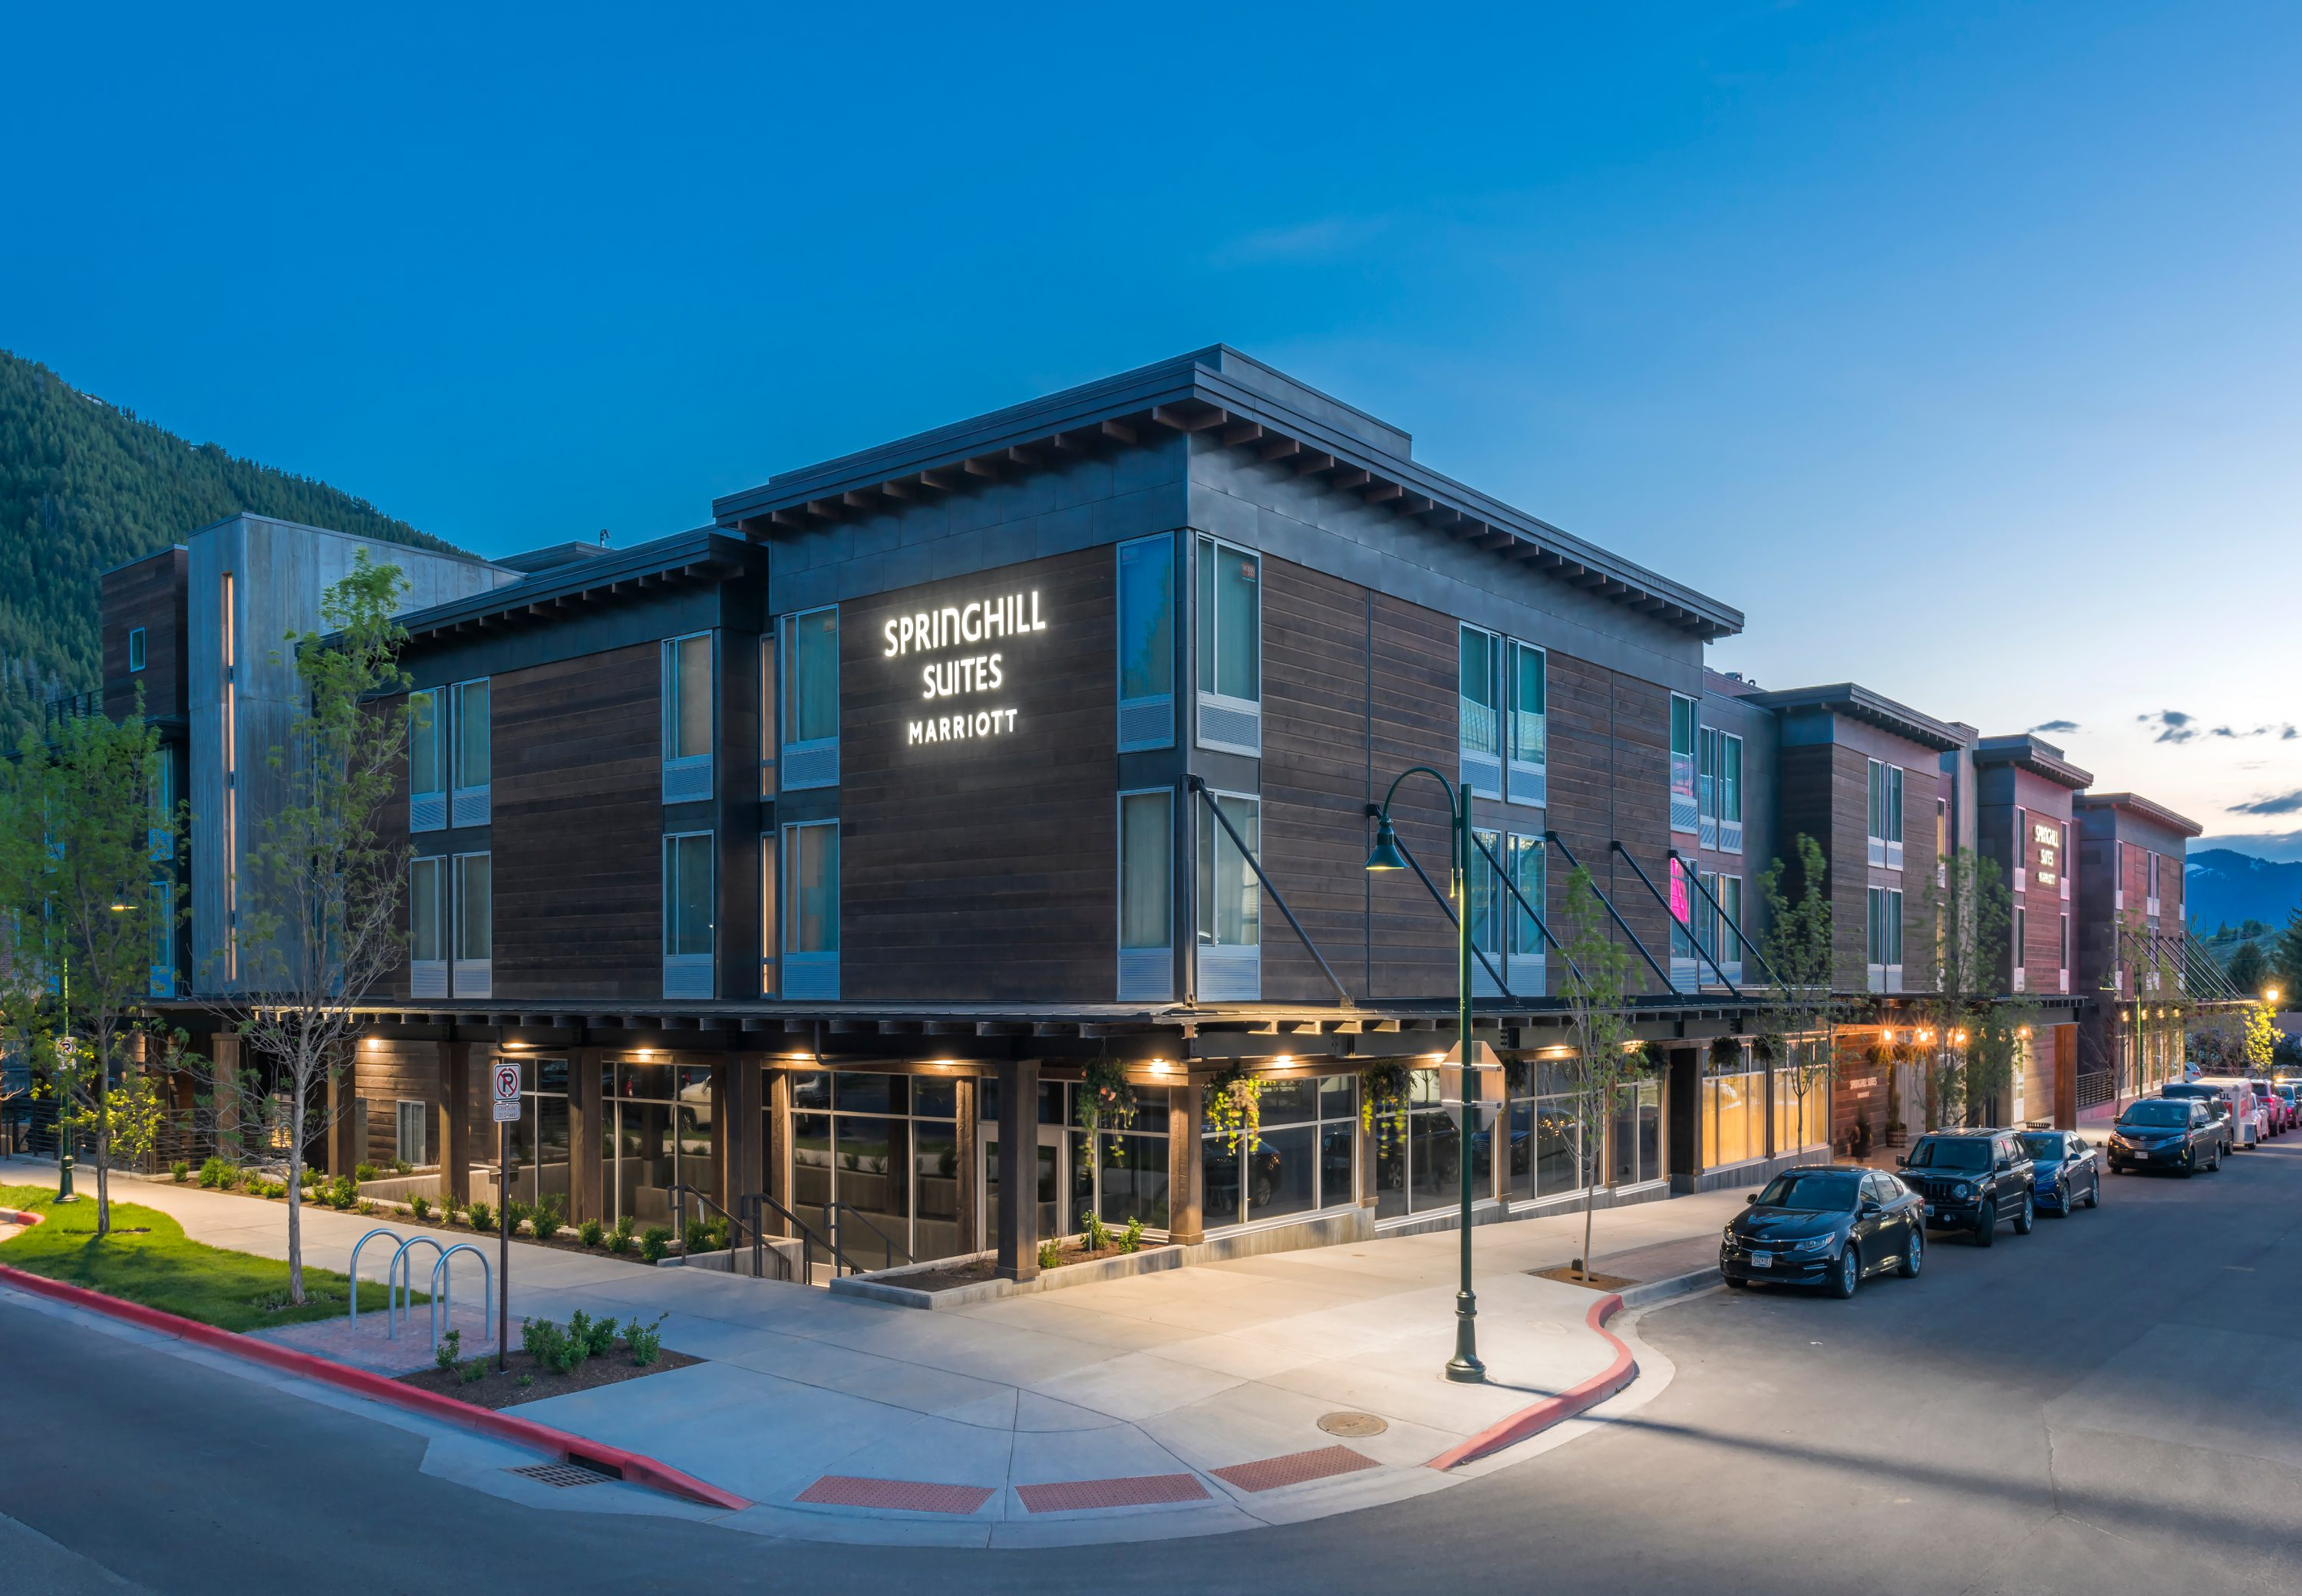 SpringHill Suites by Marriott Jackson Hole image 1